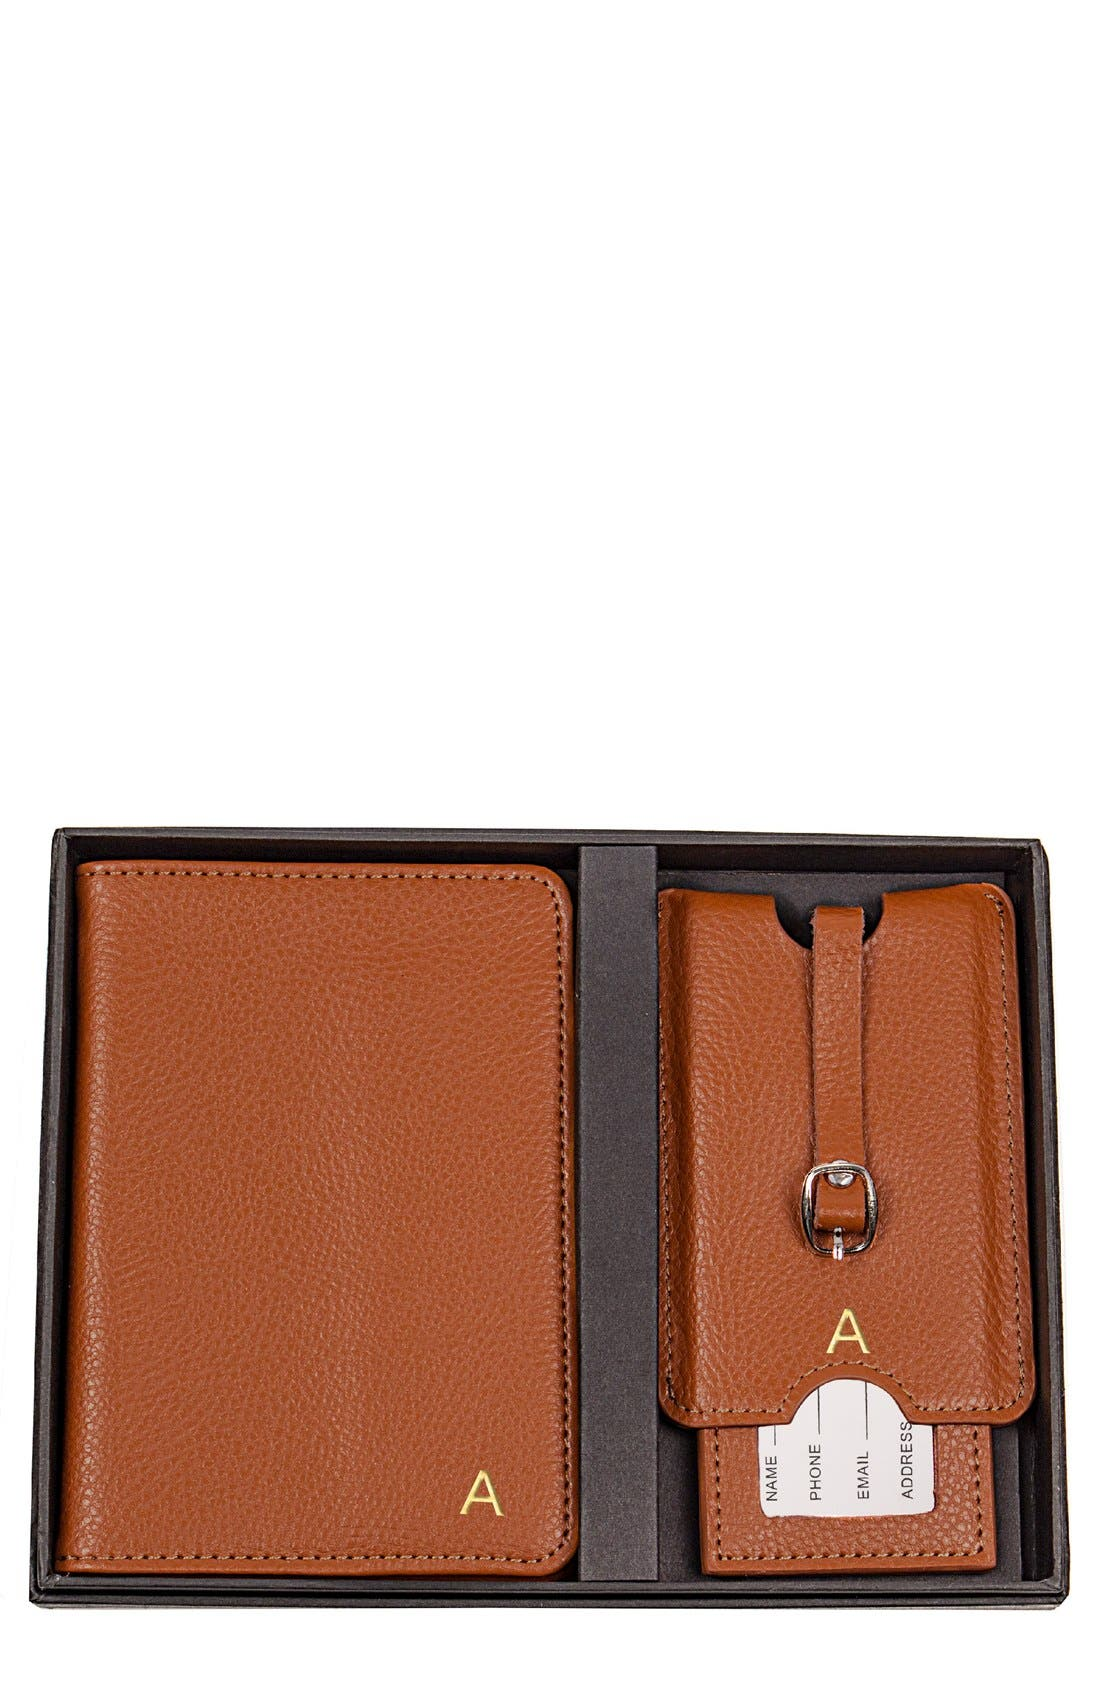 Monogram Passport Case & Luggage Tag,                         Main,                         color, Brown - A